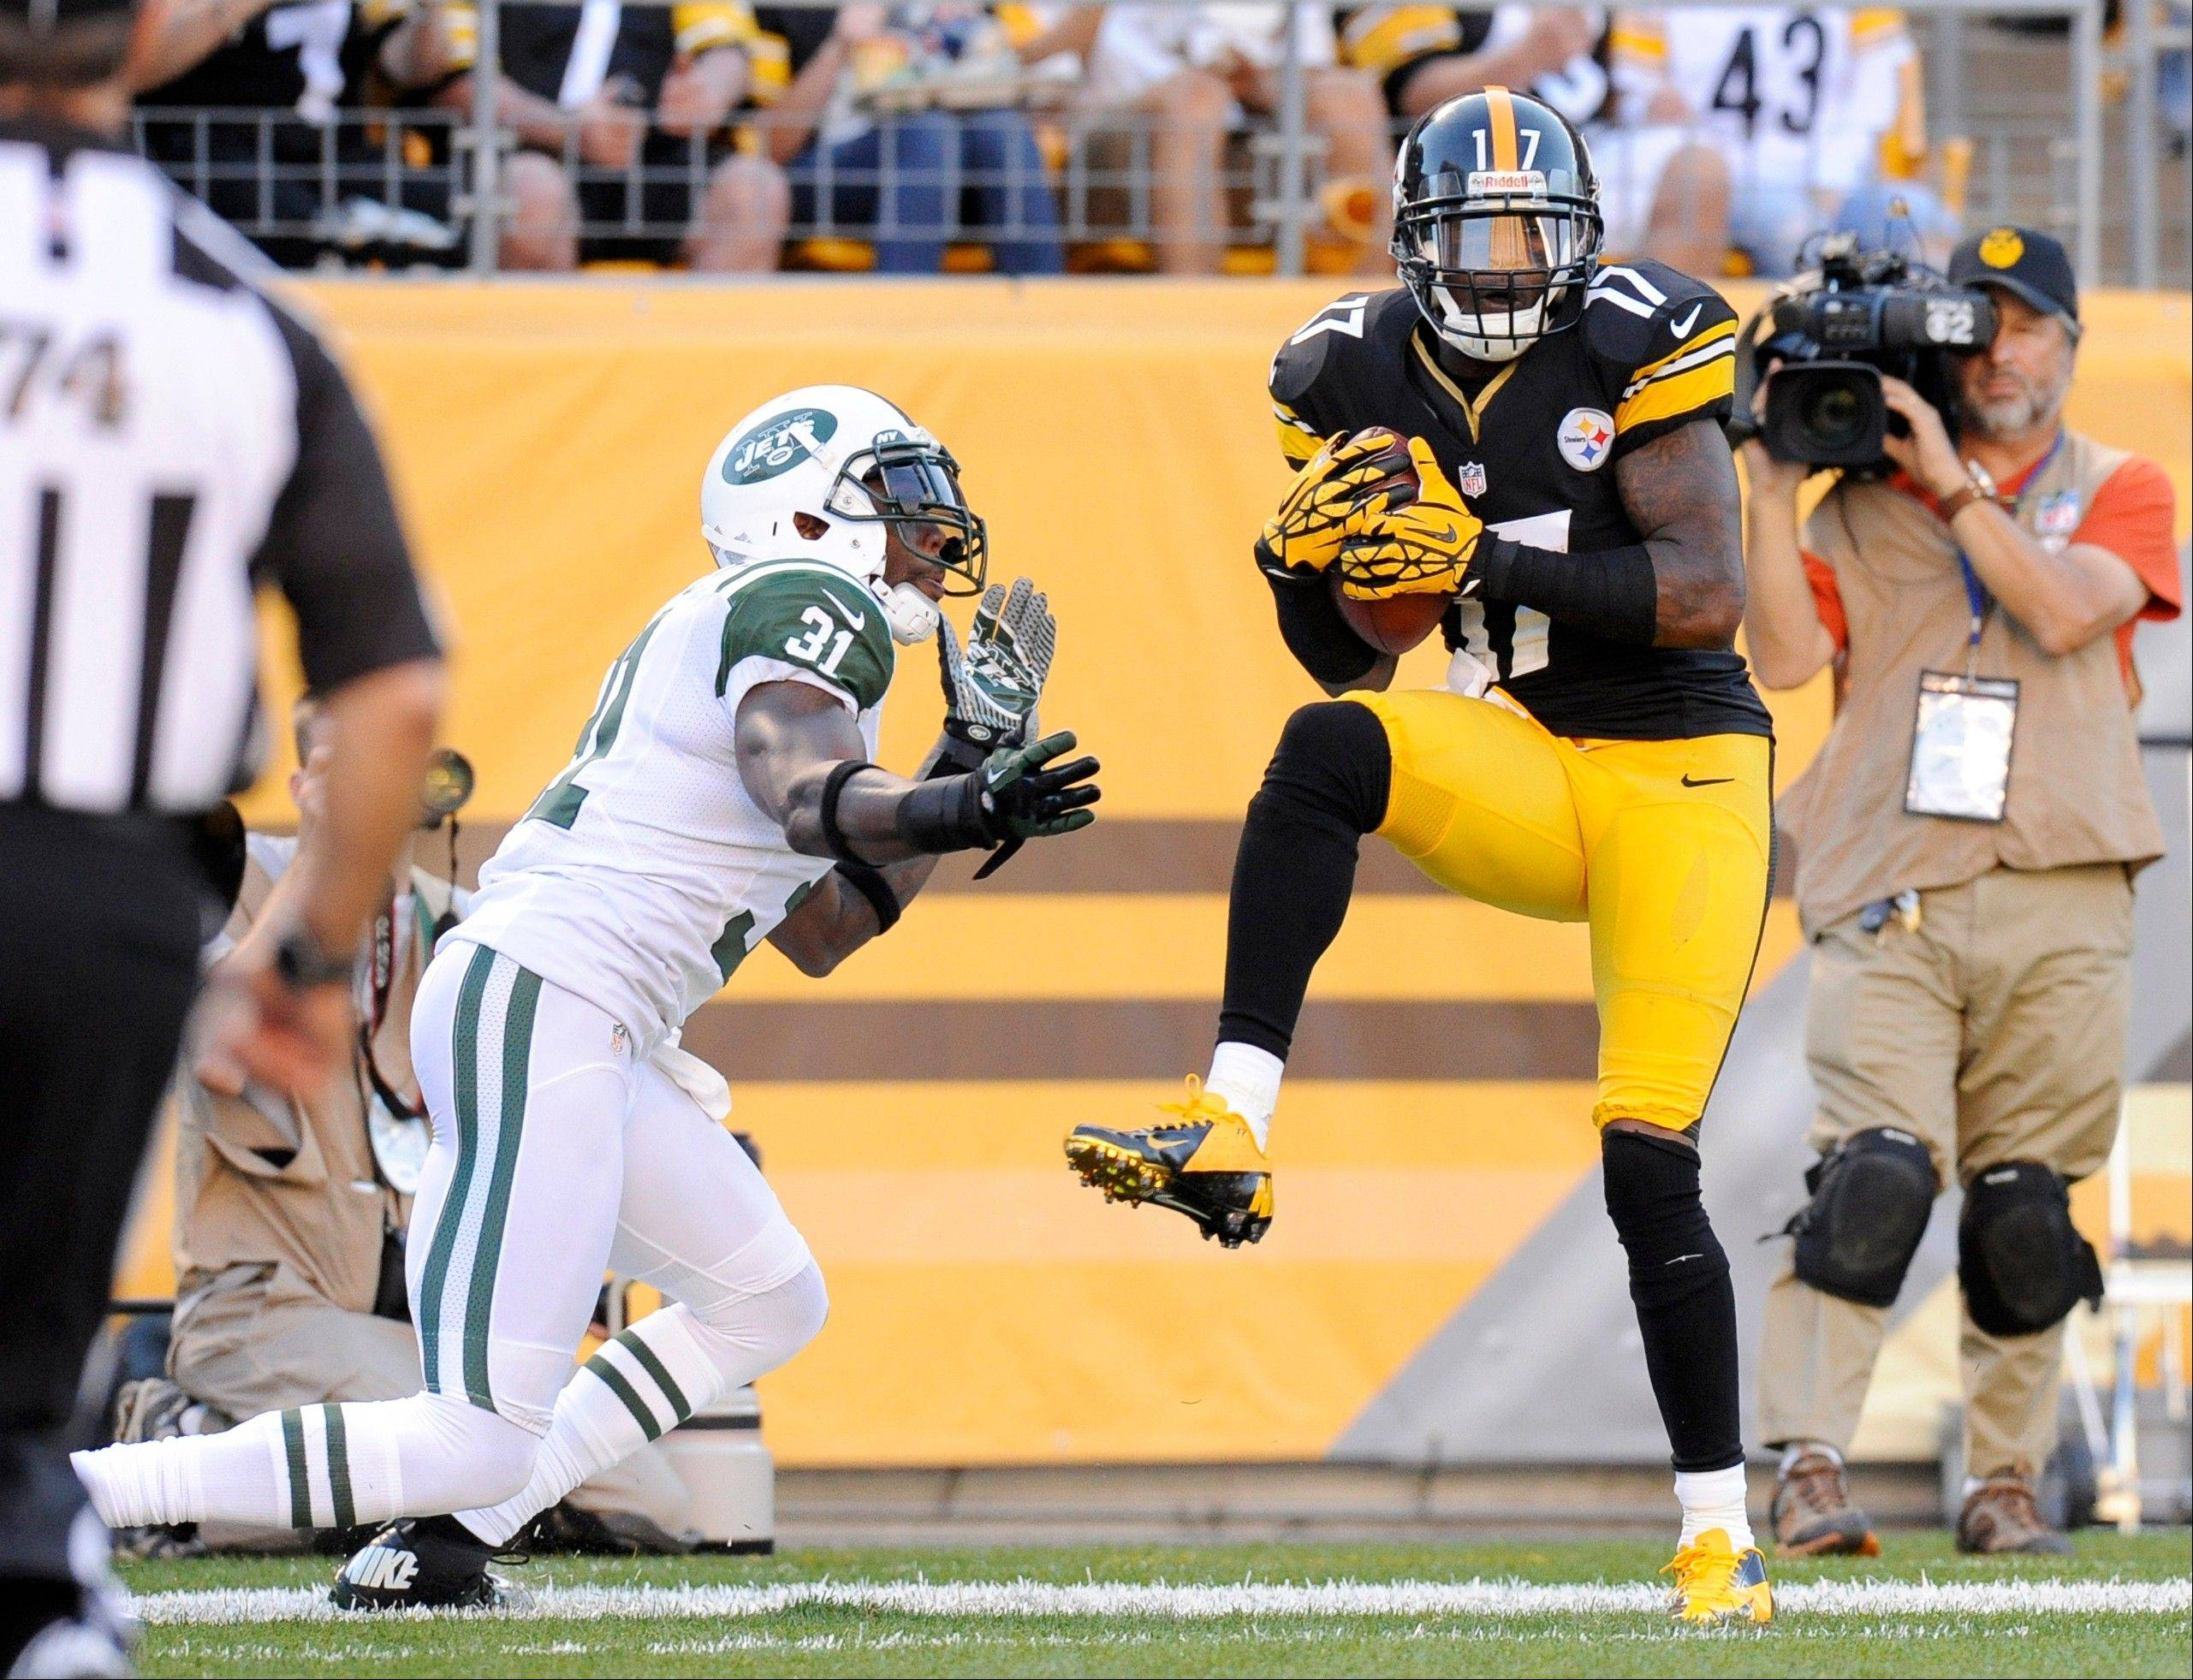 Pittsburgh Steelers wide receiver Mike Wallace (17) makes a catch for a touchdown in front of New York Jets cornerback Antonio Cromartie (31) in the third quarter in Pittsburgh. The touchdown call was confirmed after replay.